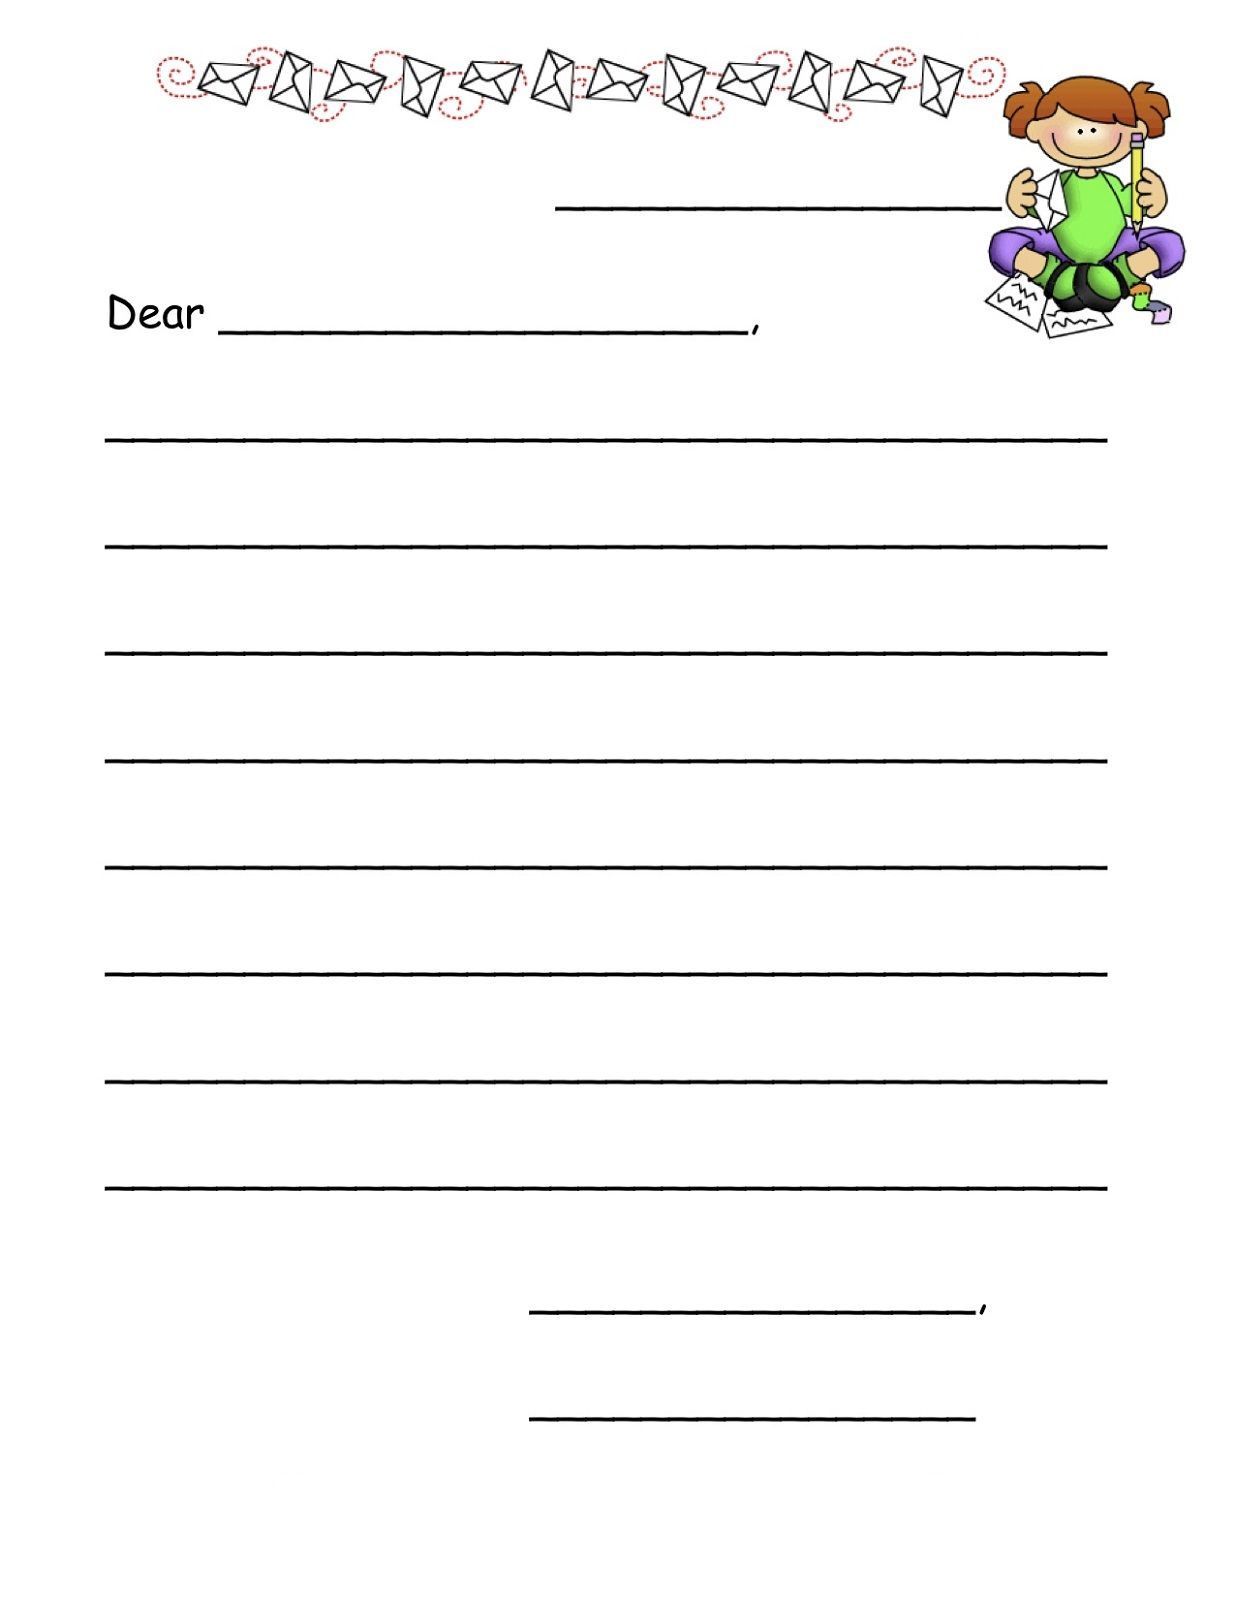 Lined Paper for Kids | Activity Shelter | Notebook Paper Templates ...